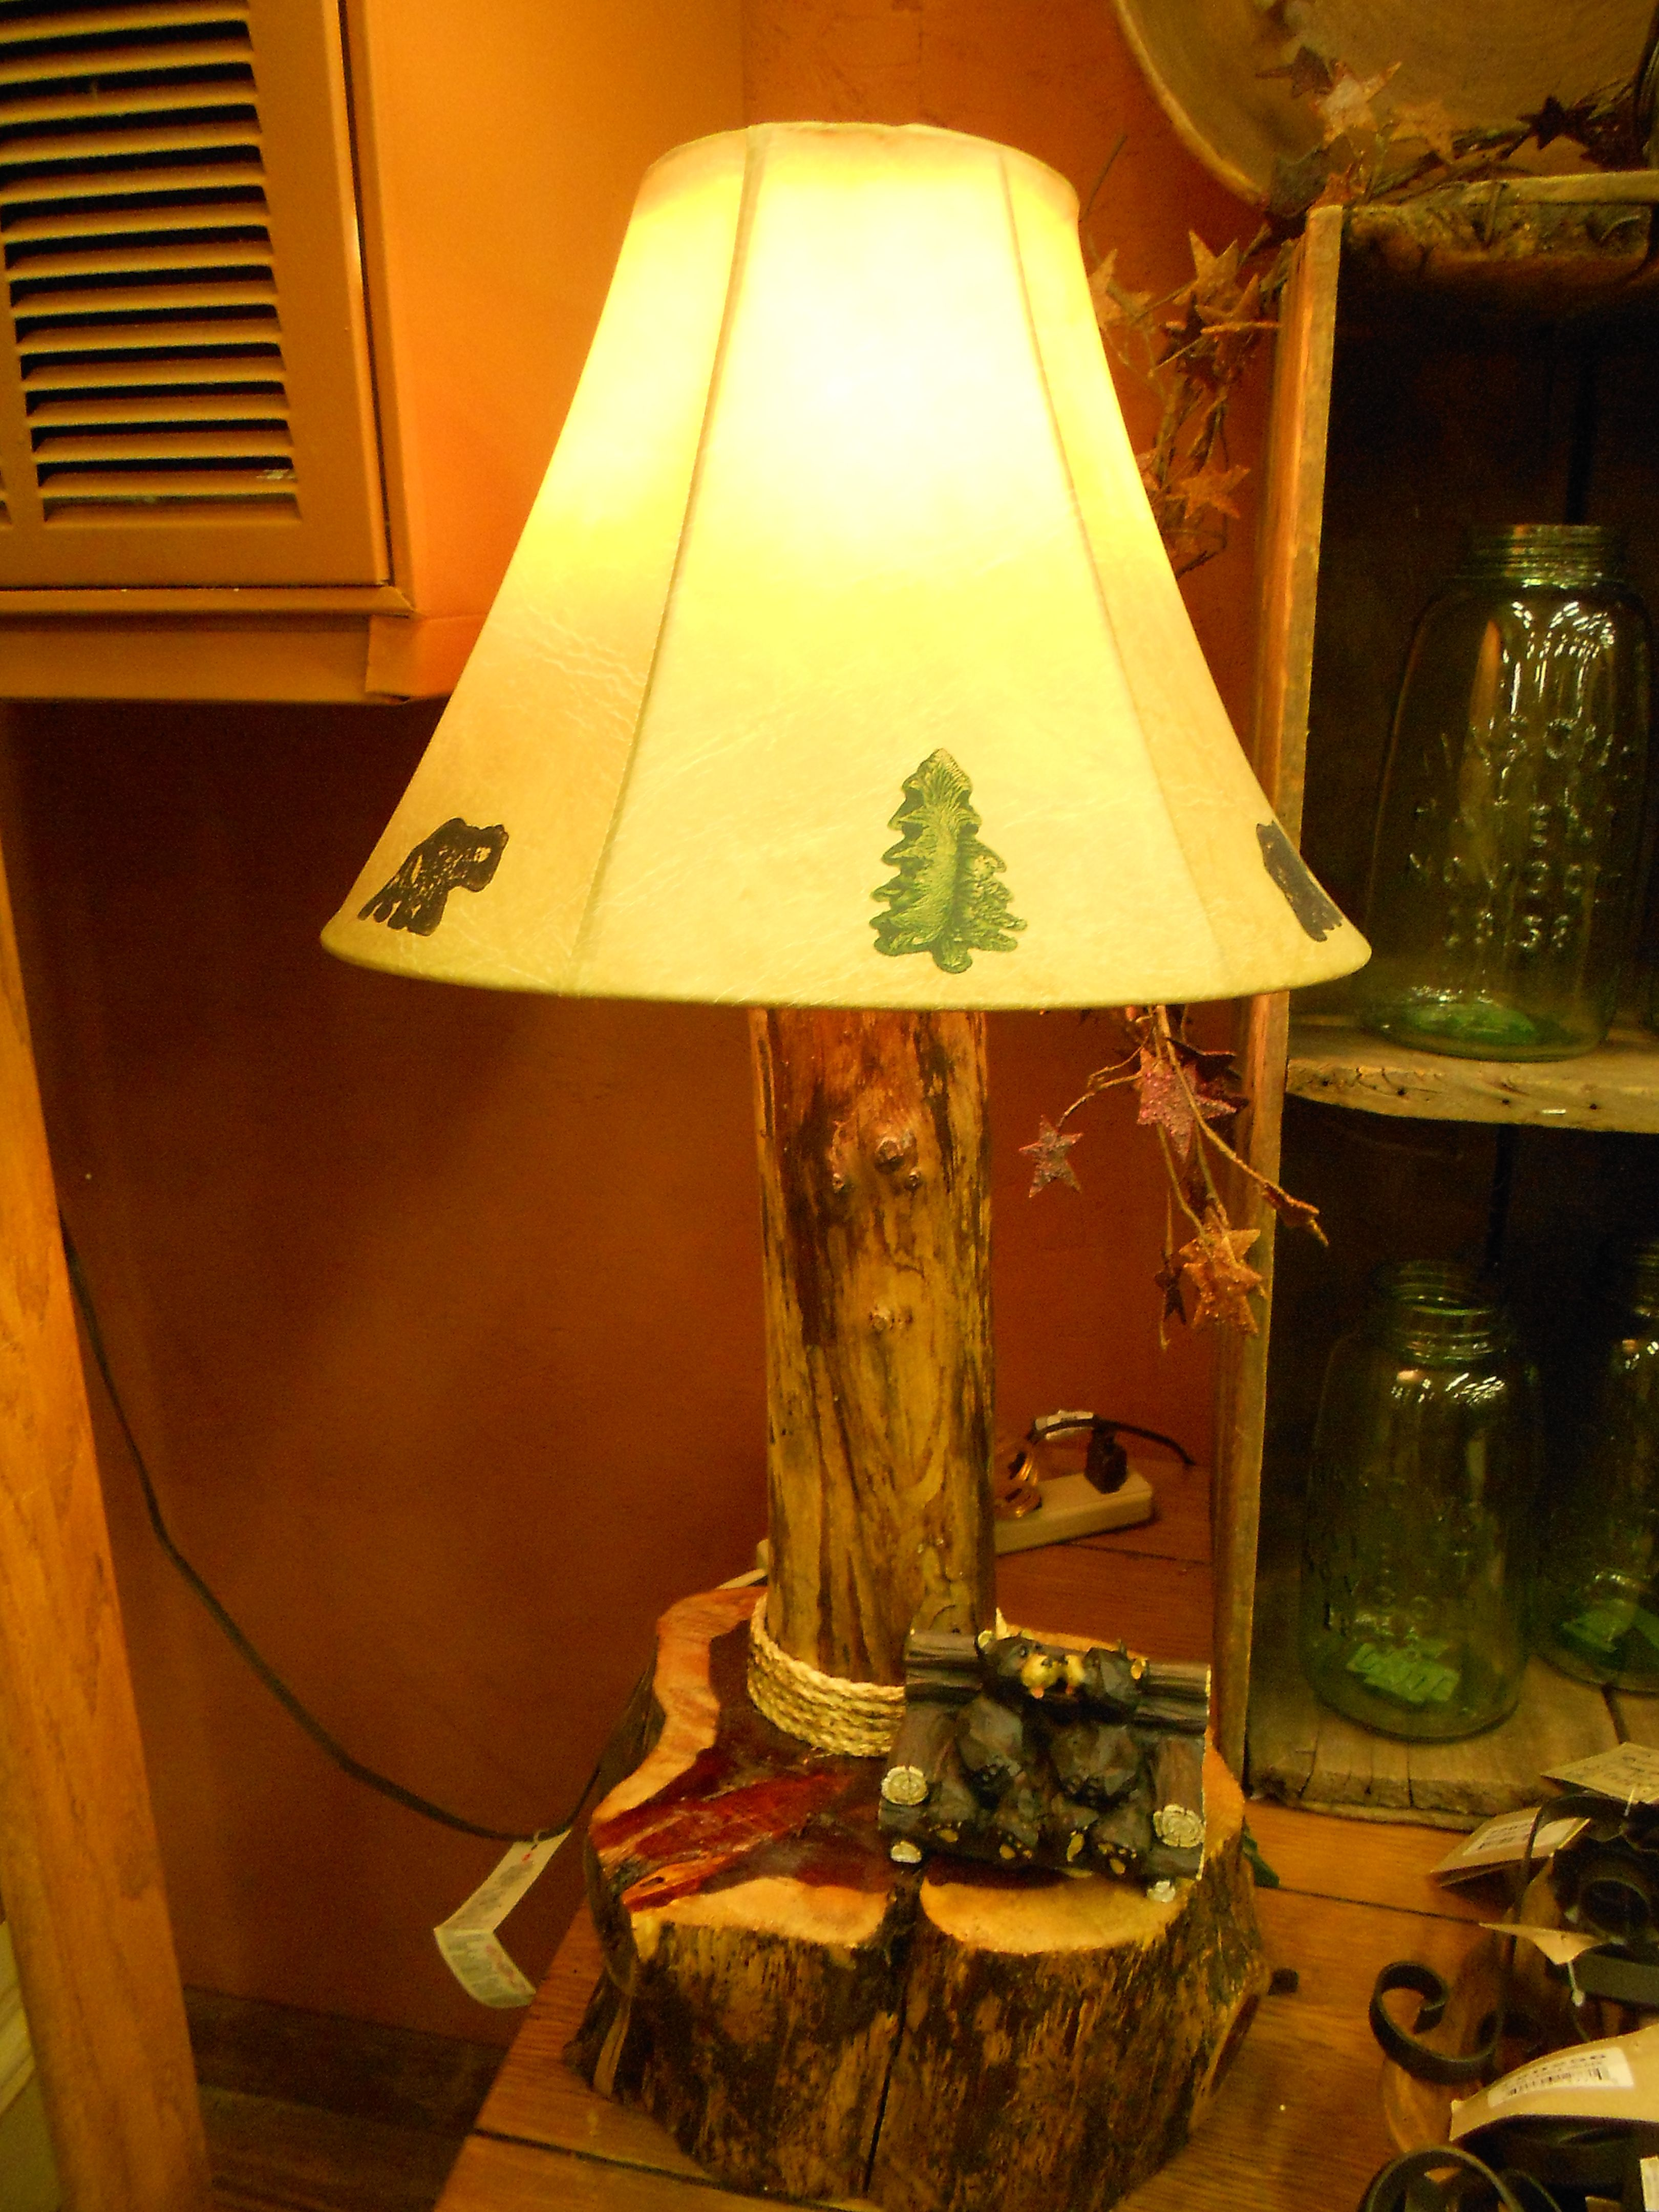 Locally Made Lamps Lamp Table Lamp Decor